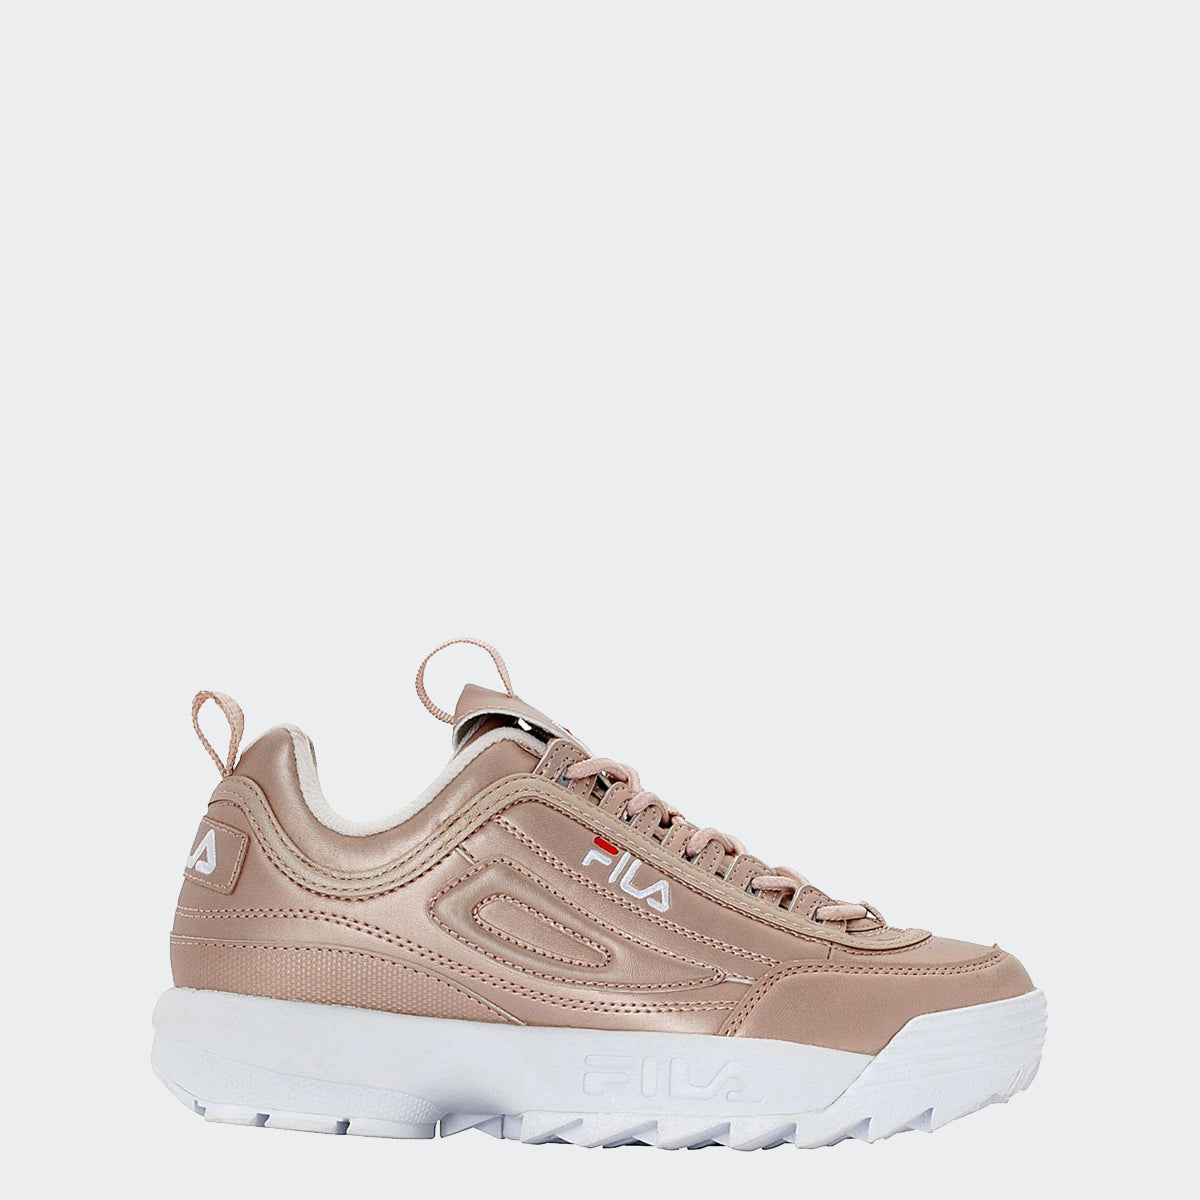 FILA Disruptor 2 Premium Metallic Rose Gold | Chicago City